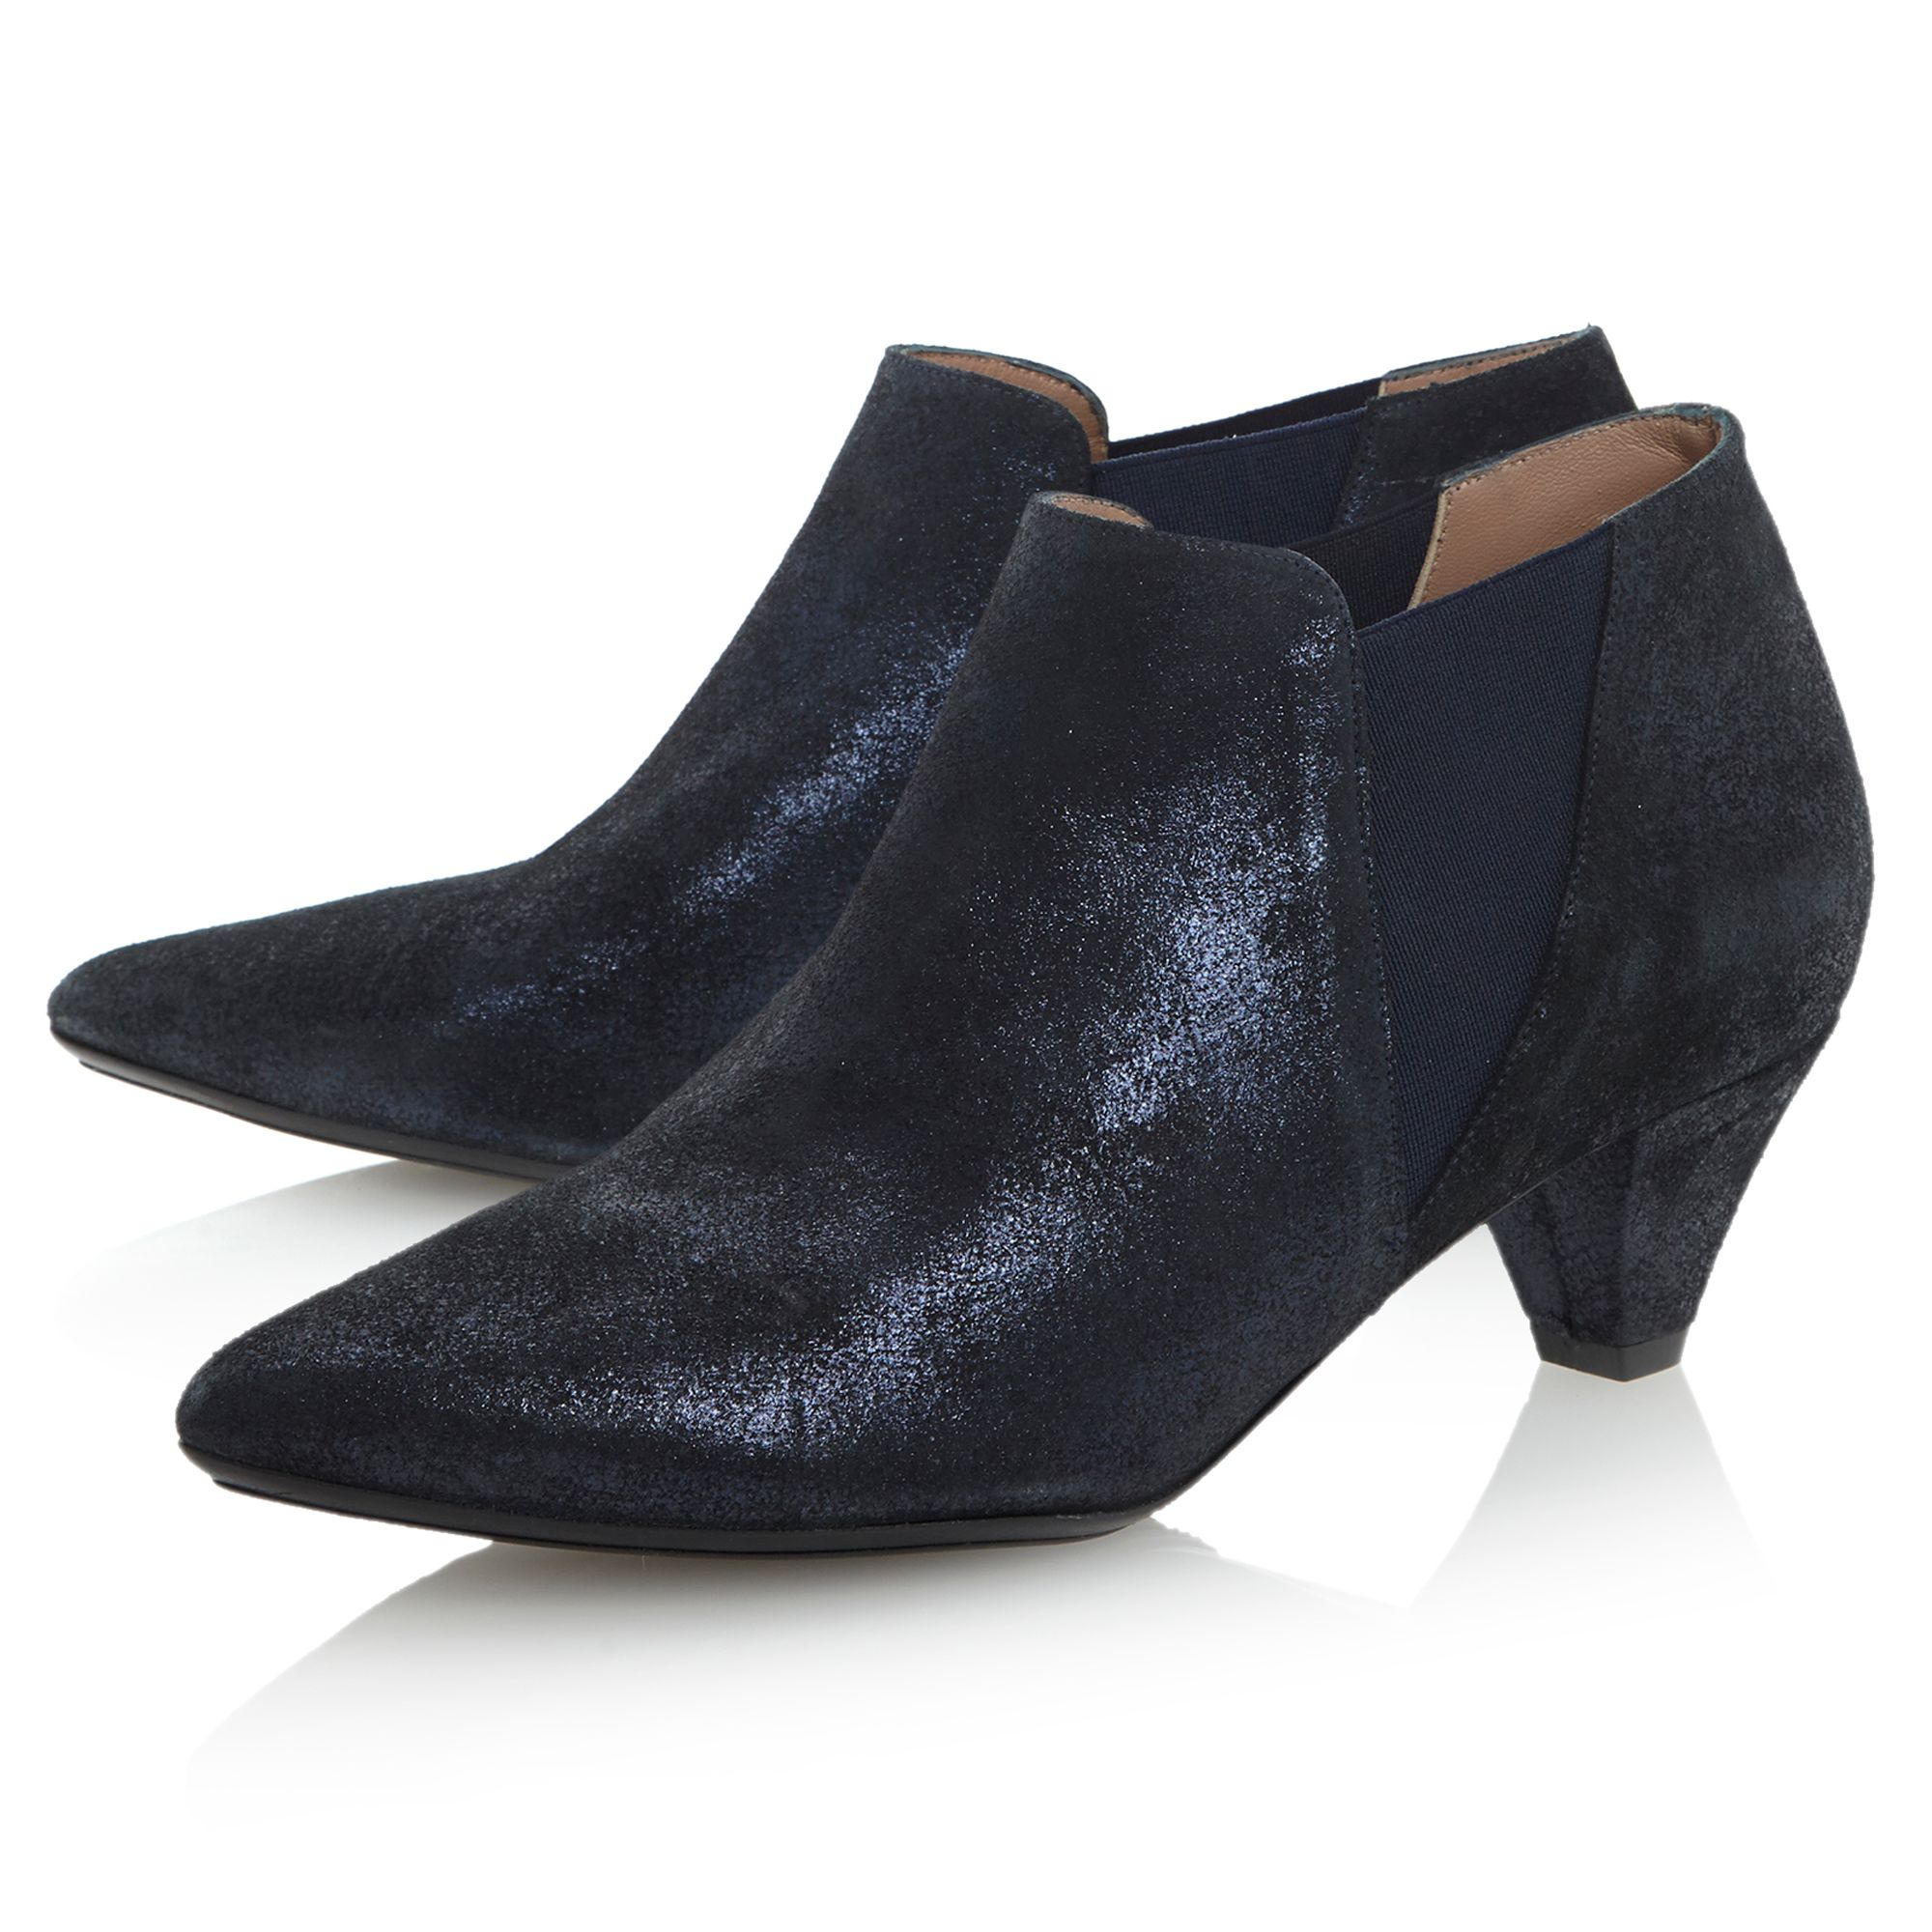 Dune Black Leather Saxe Pointed Kitten Heel Ankle Shoe Boots in Navy (Black)